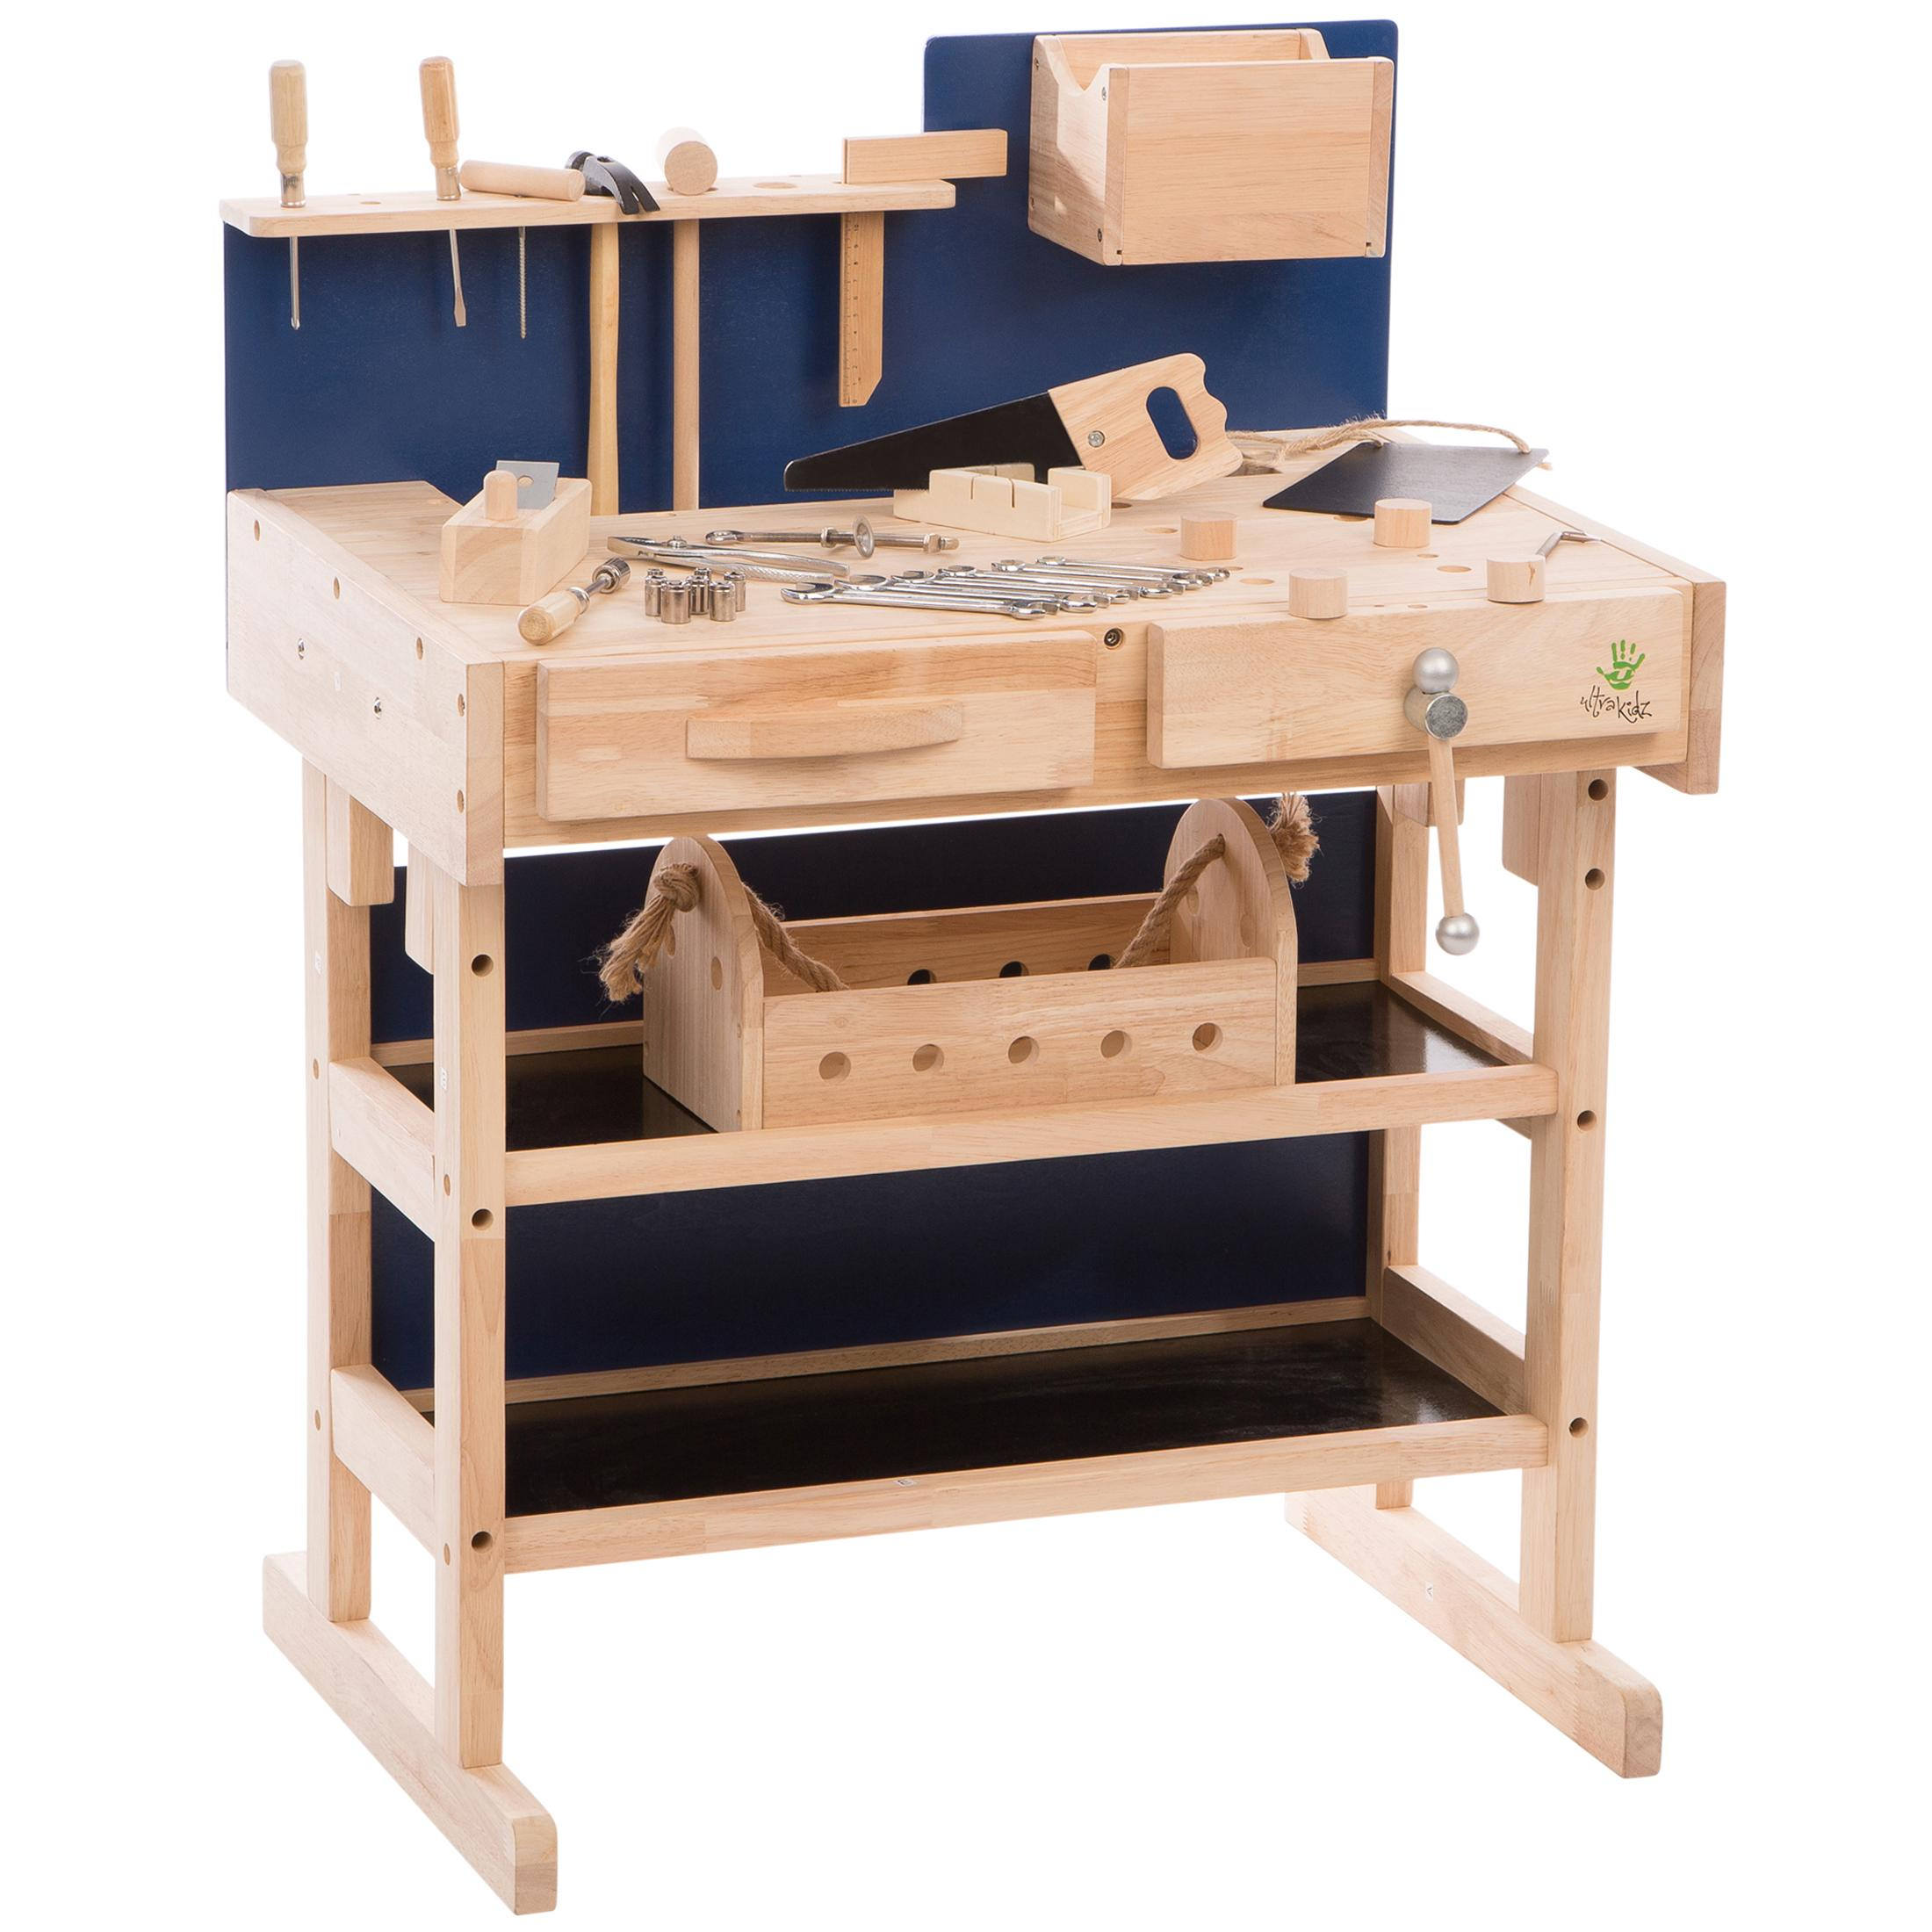 Ultrakidz Children's Workbench made of Solid Wood with ...